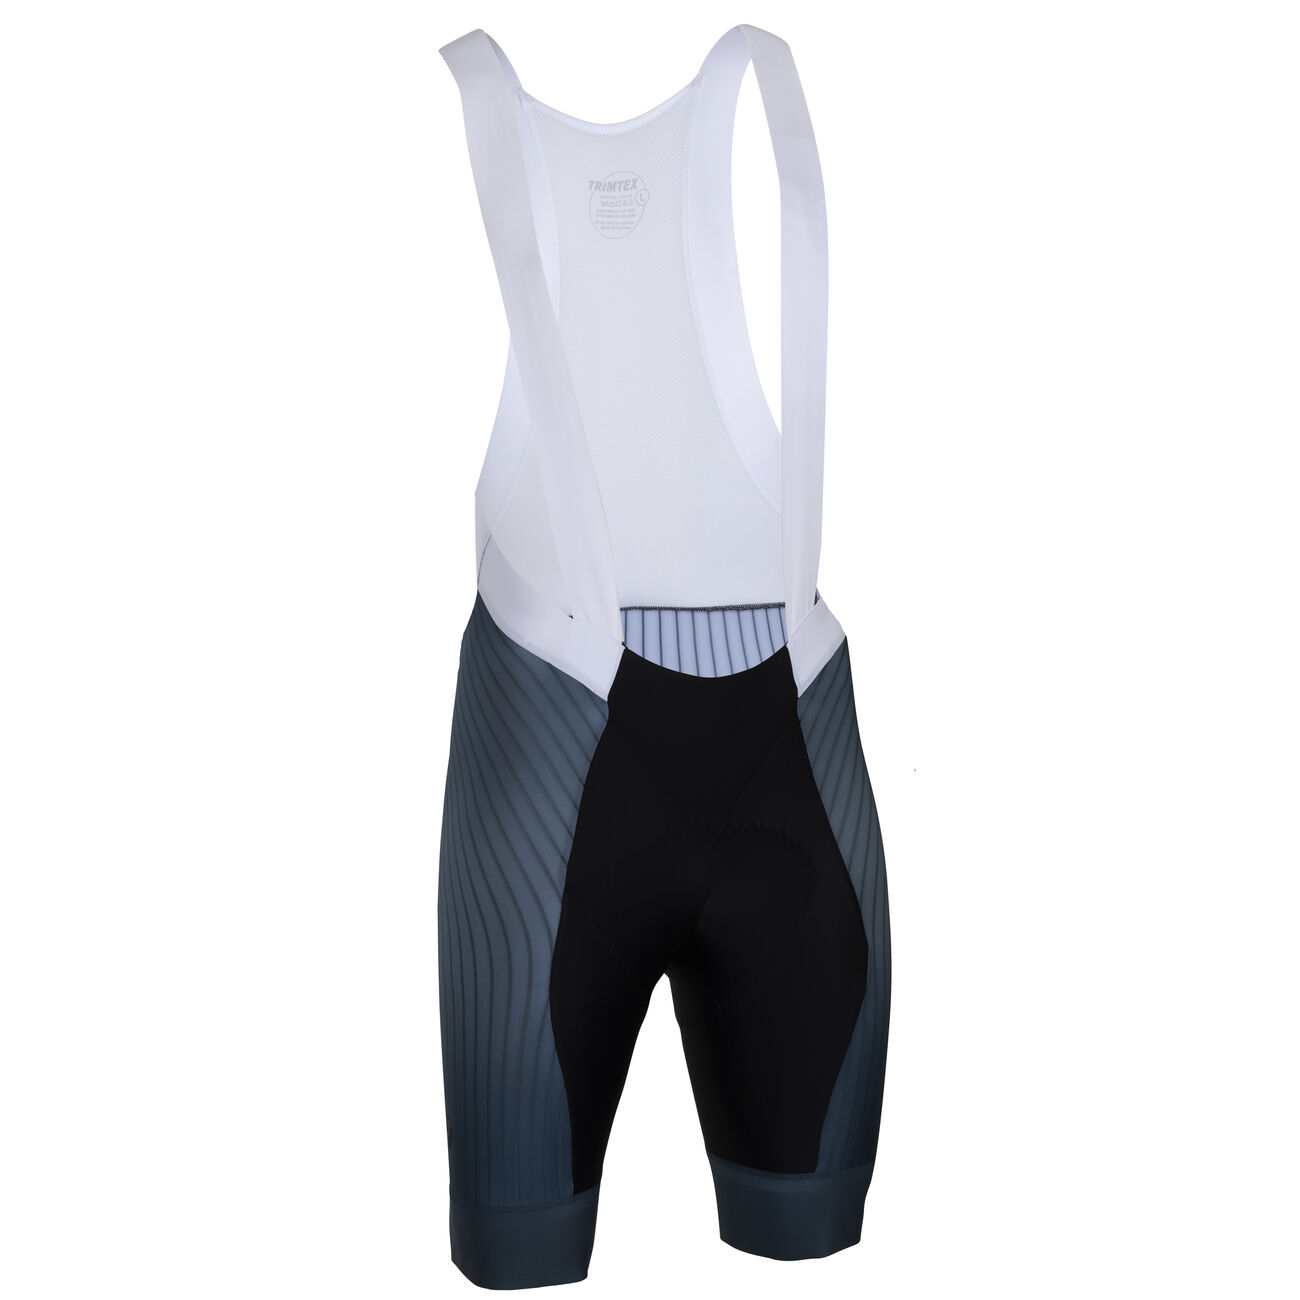 Aero 2.0 cycling bib shorts men's